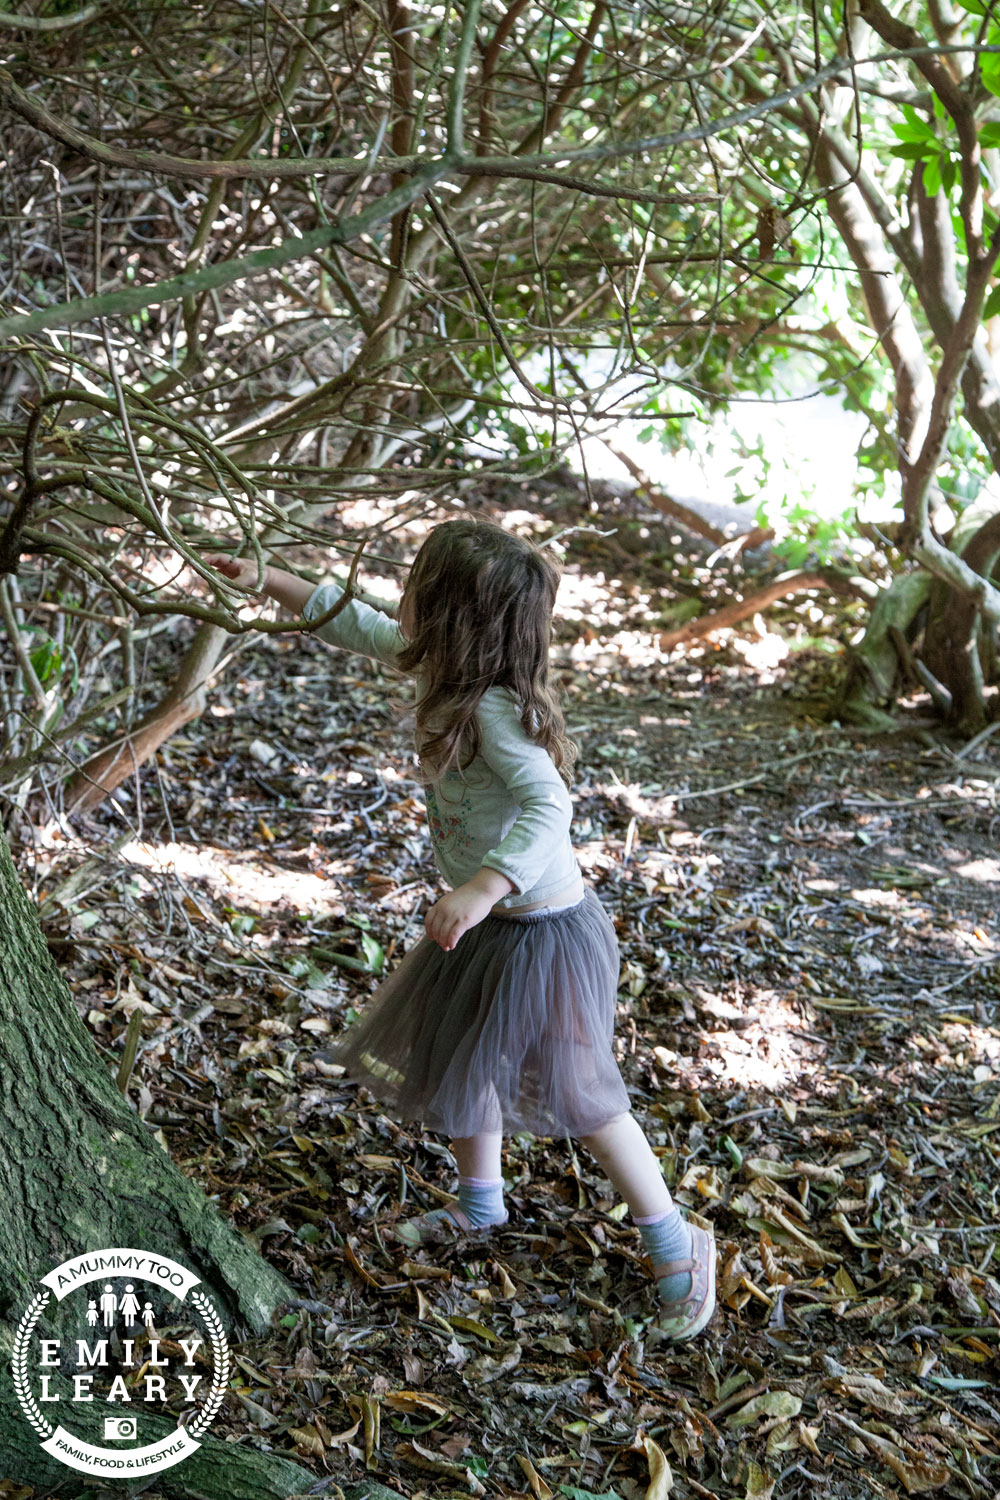 Exploring the woods at Clumber Park